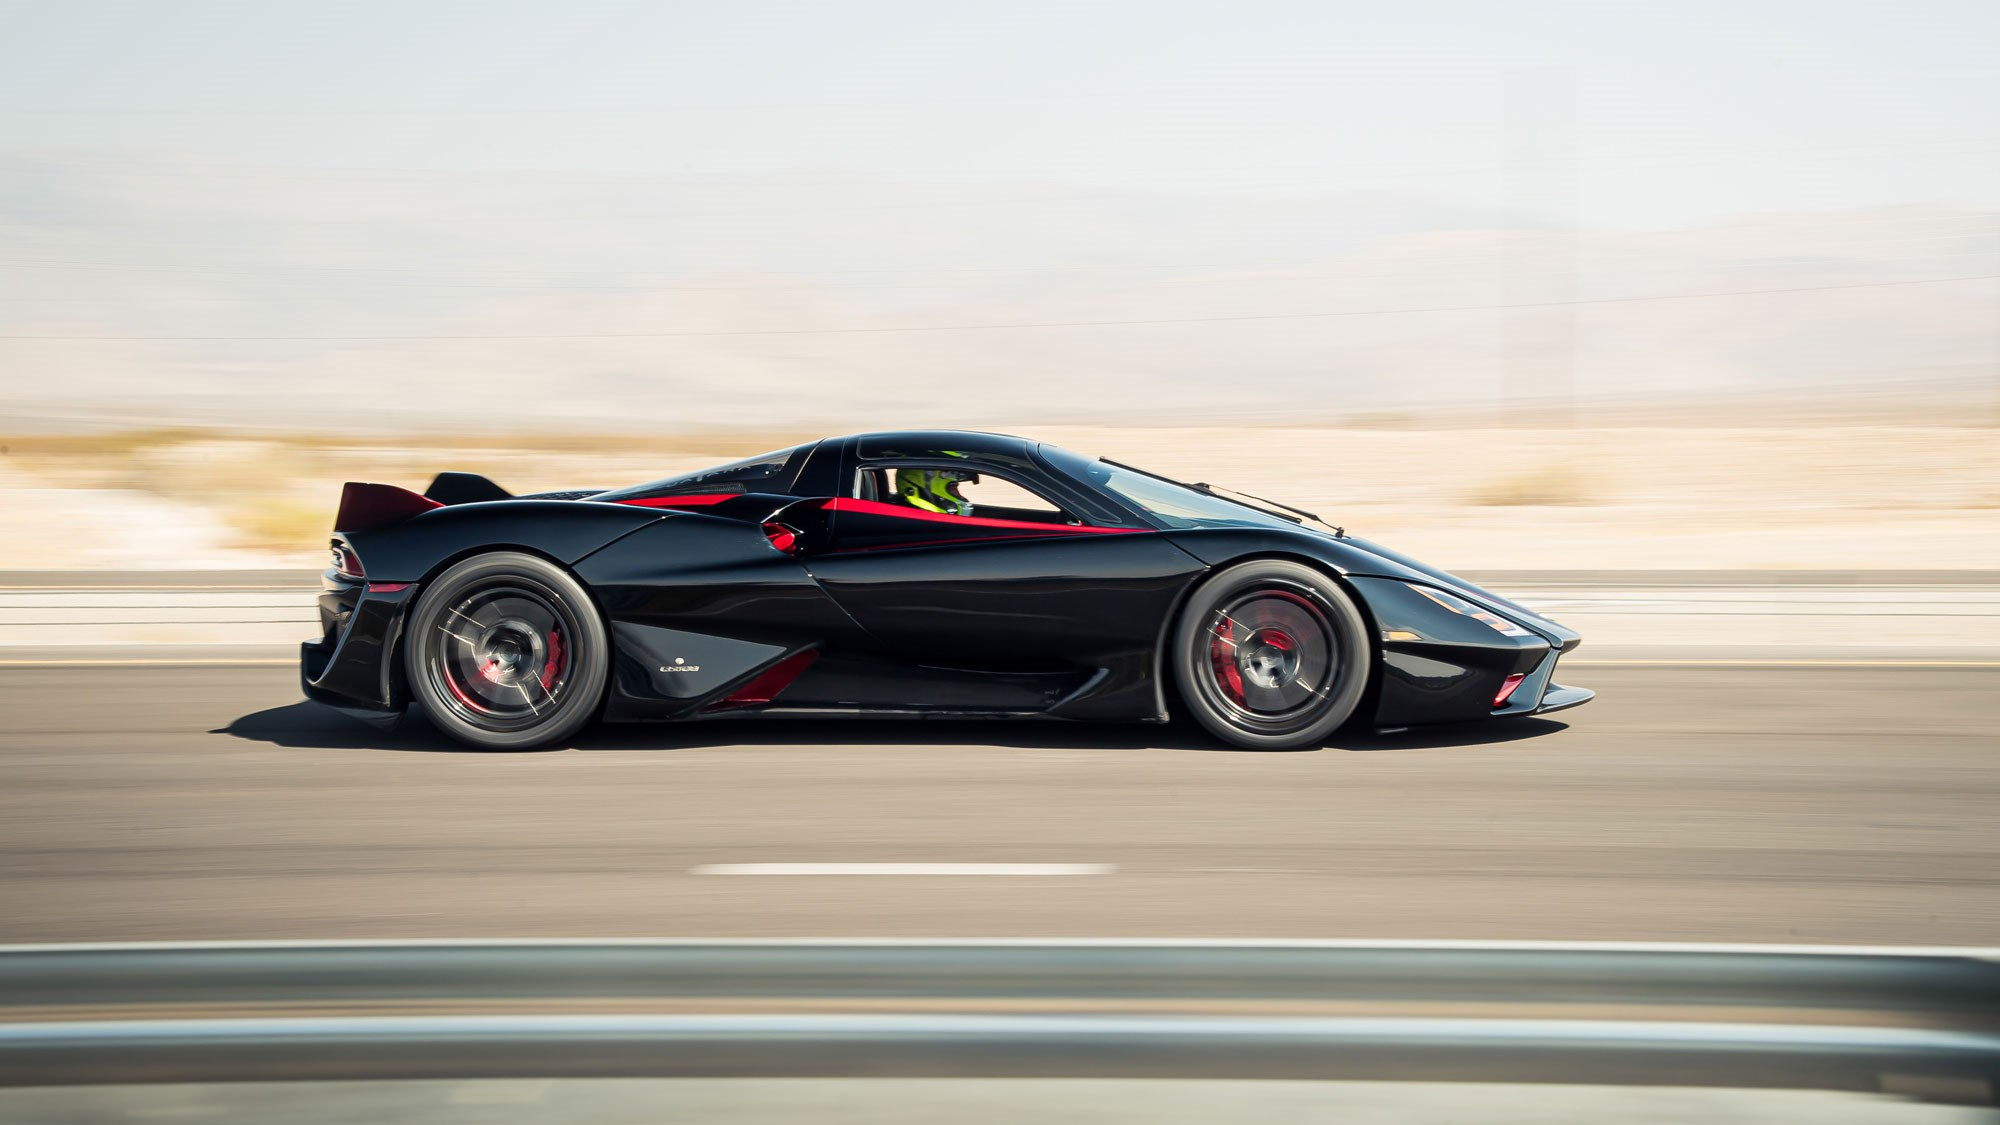 331mph Tuatara is world's fastest production vehicle